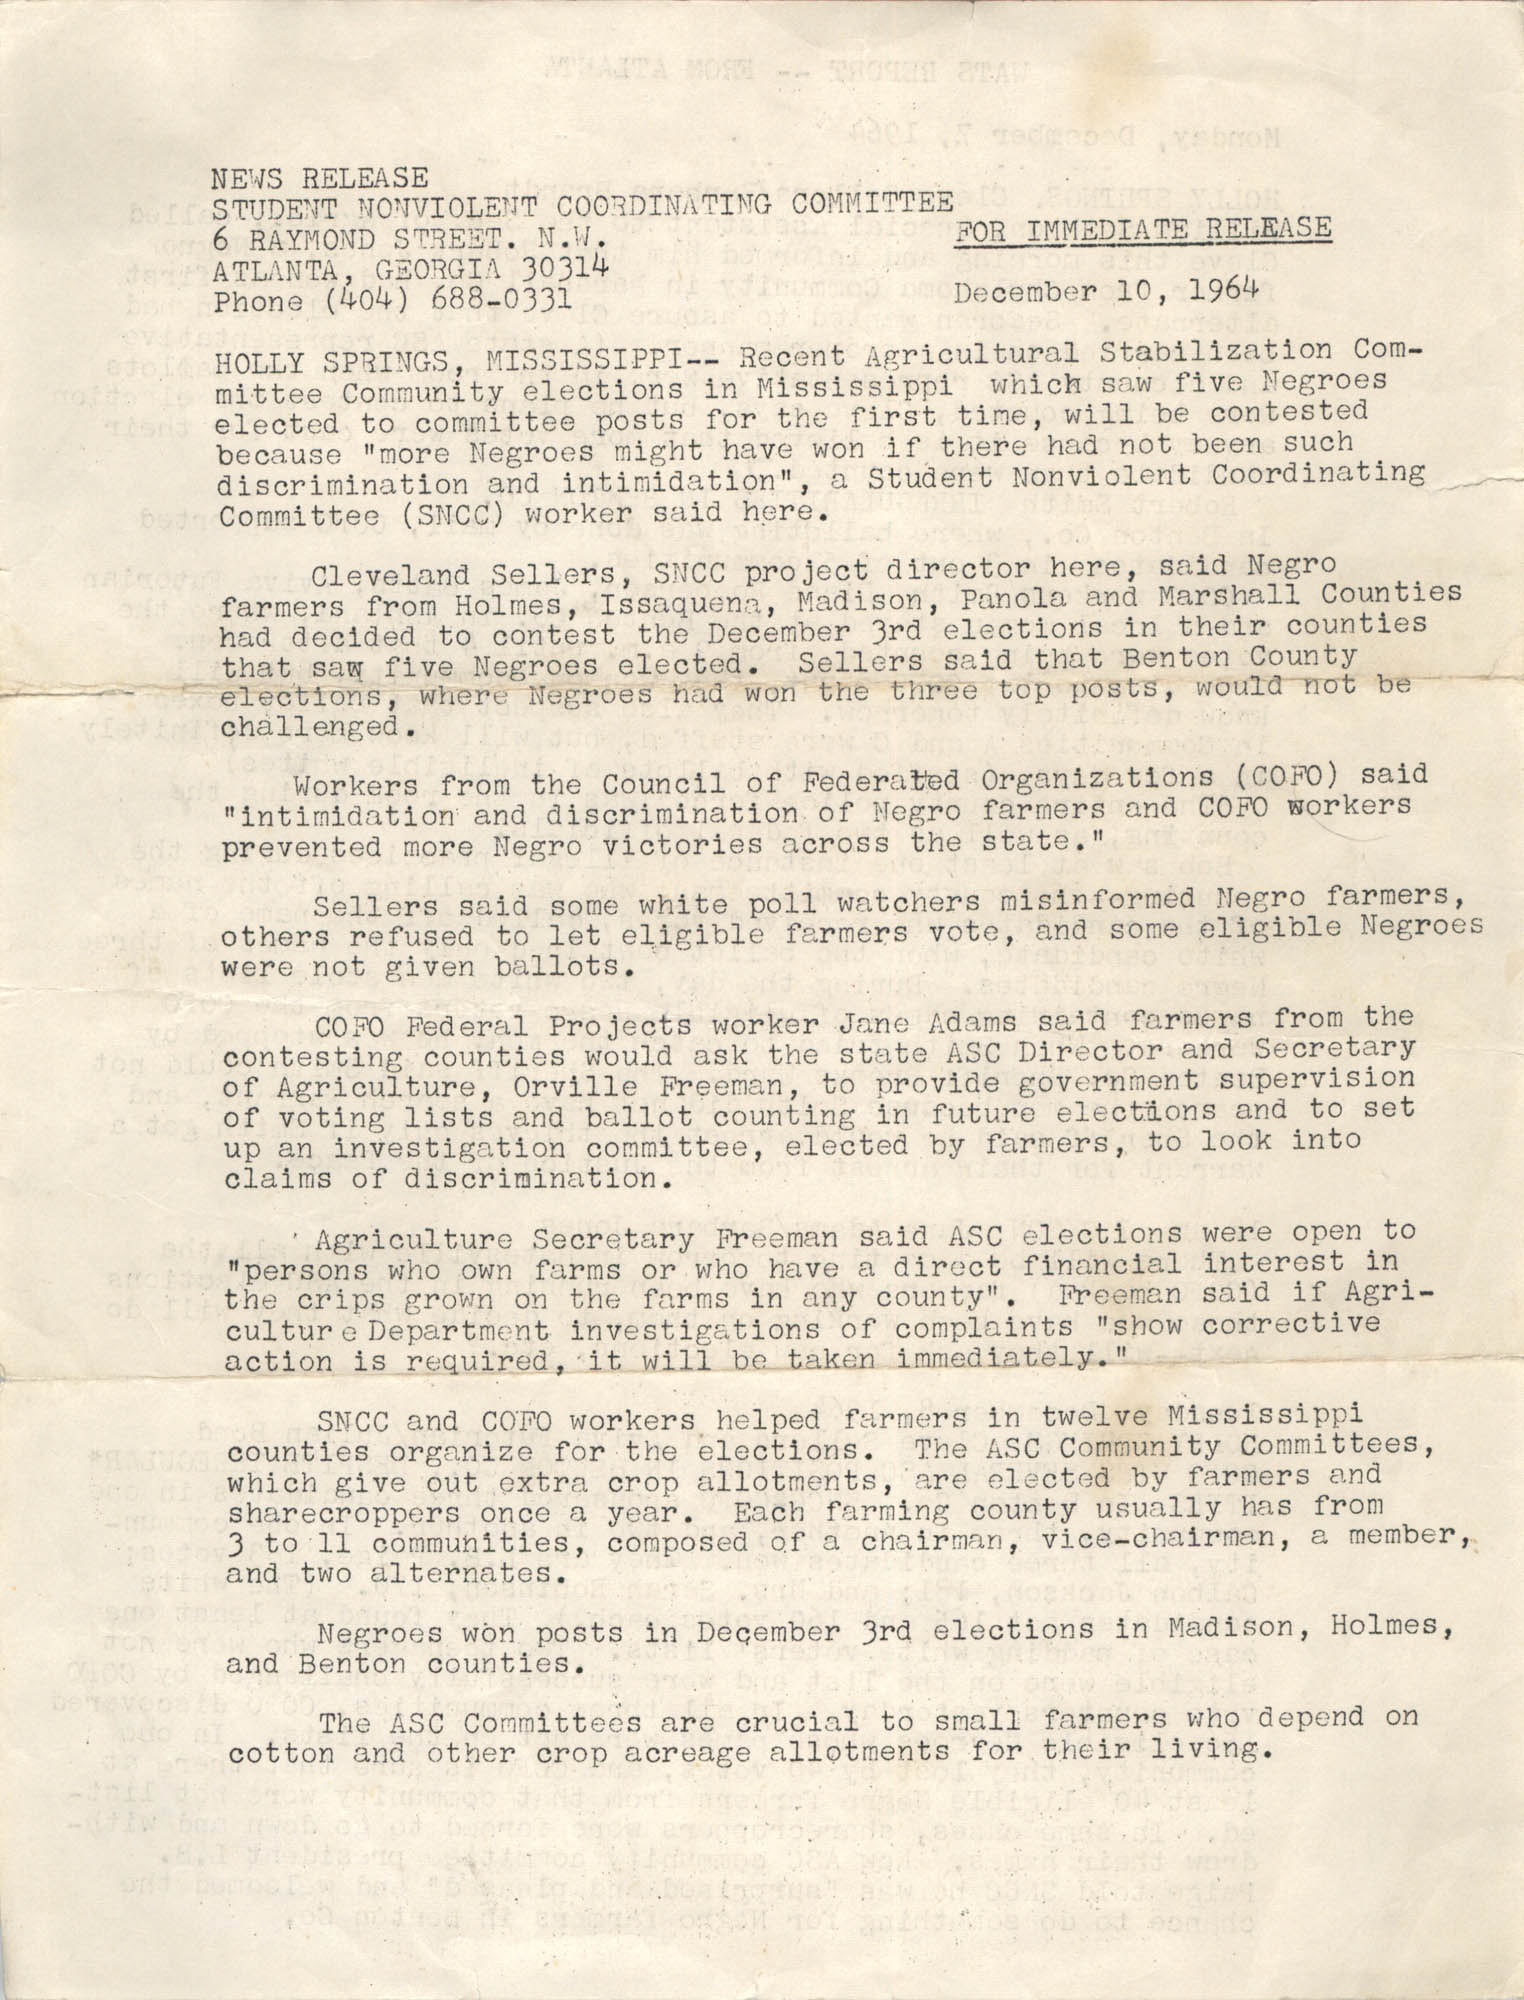 Student Nonviolent Coordinating Committee Press Release, December 10, 1964